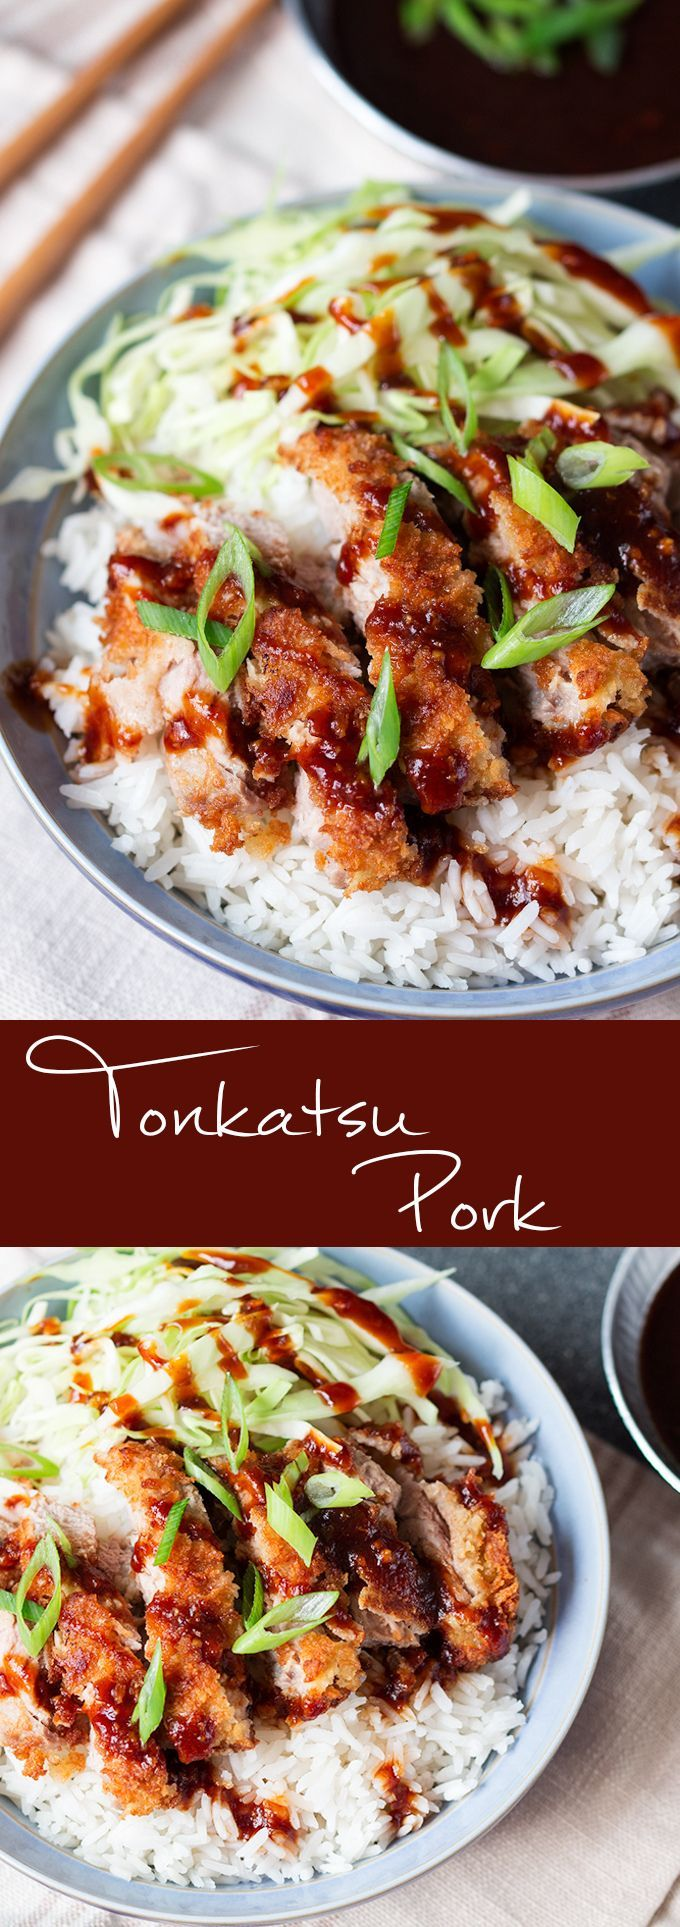 Tonkatsu Pork - crispy coated sliced pork with a delicious sweet and tangy sauce.